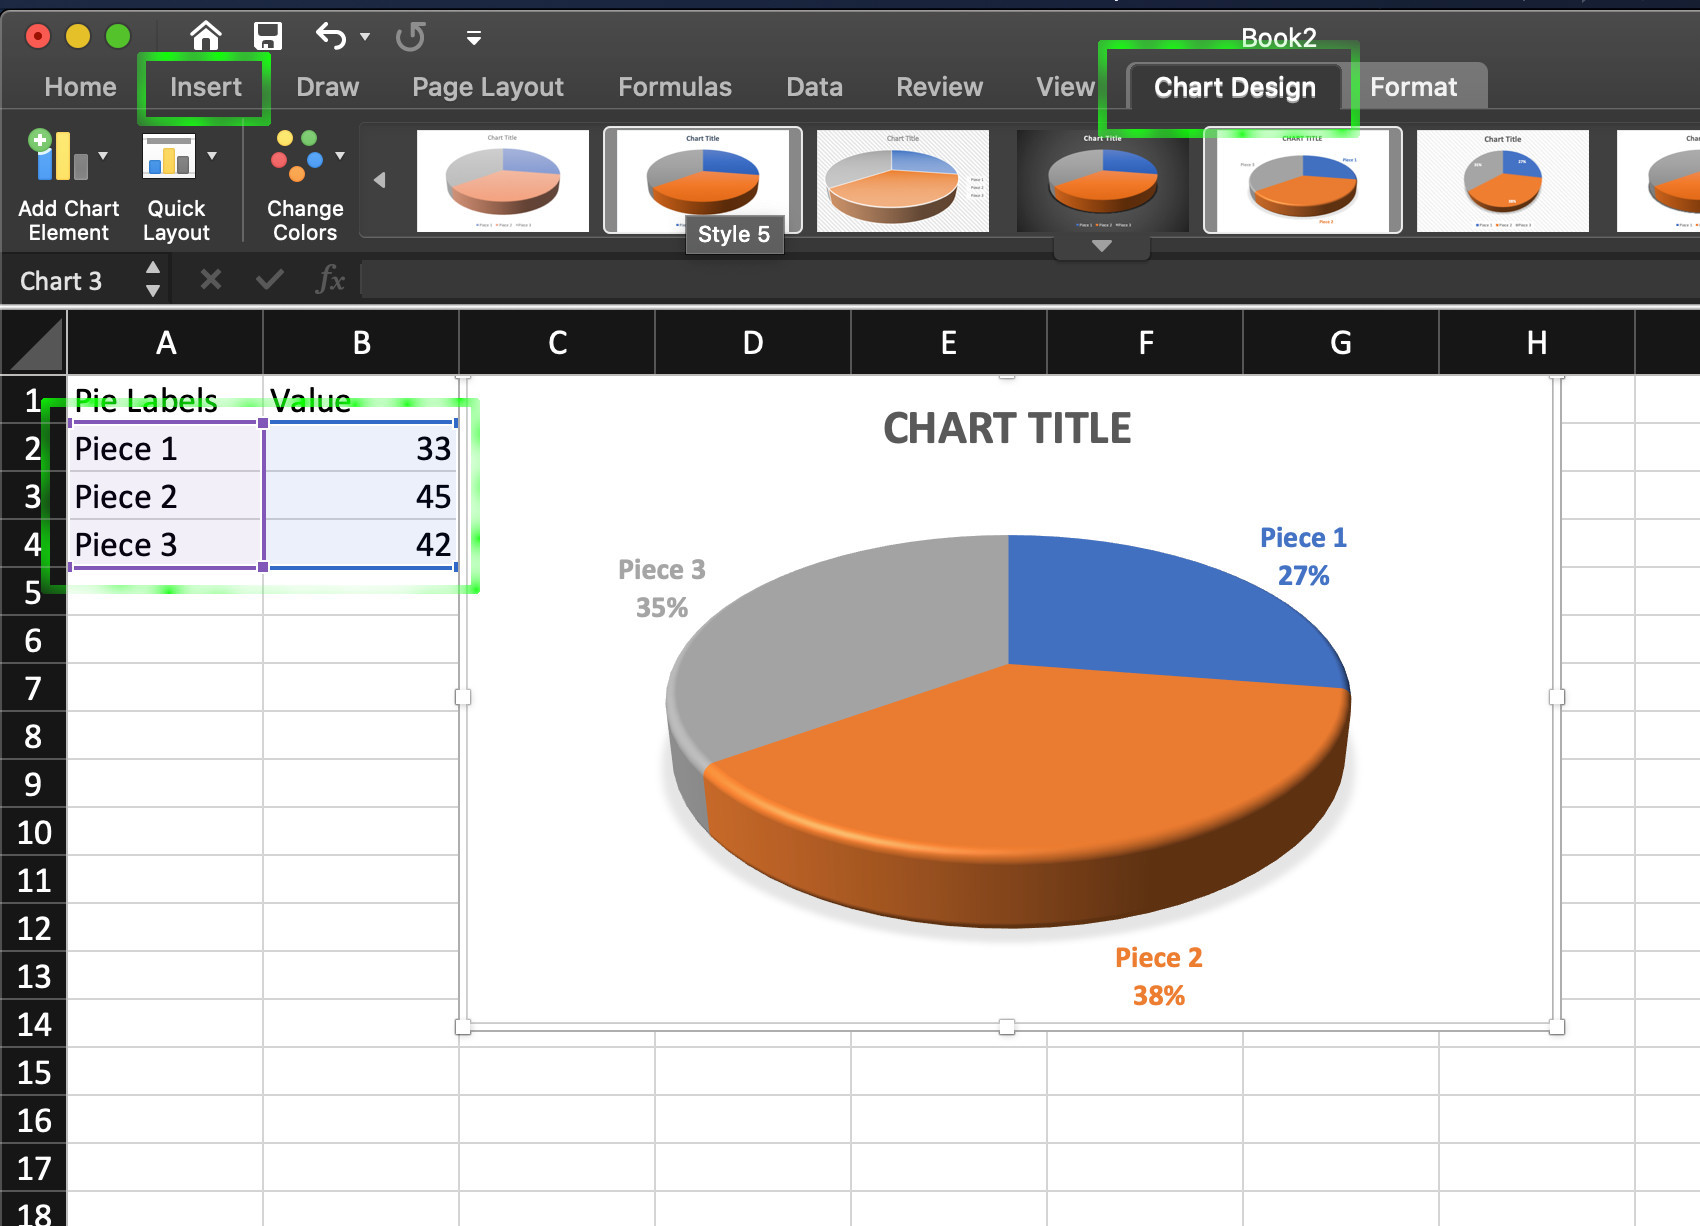 Selecting a chart design for an Excel pie chart in a spreadsheet